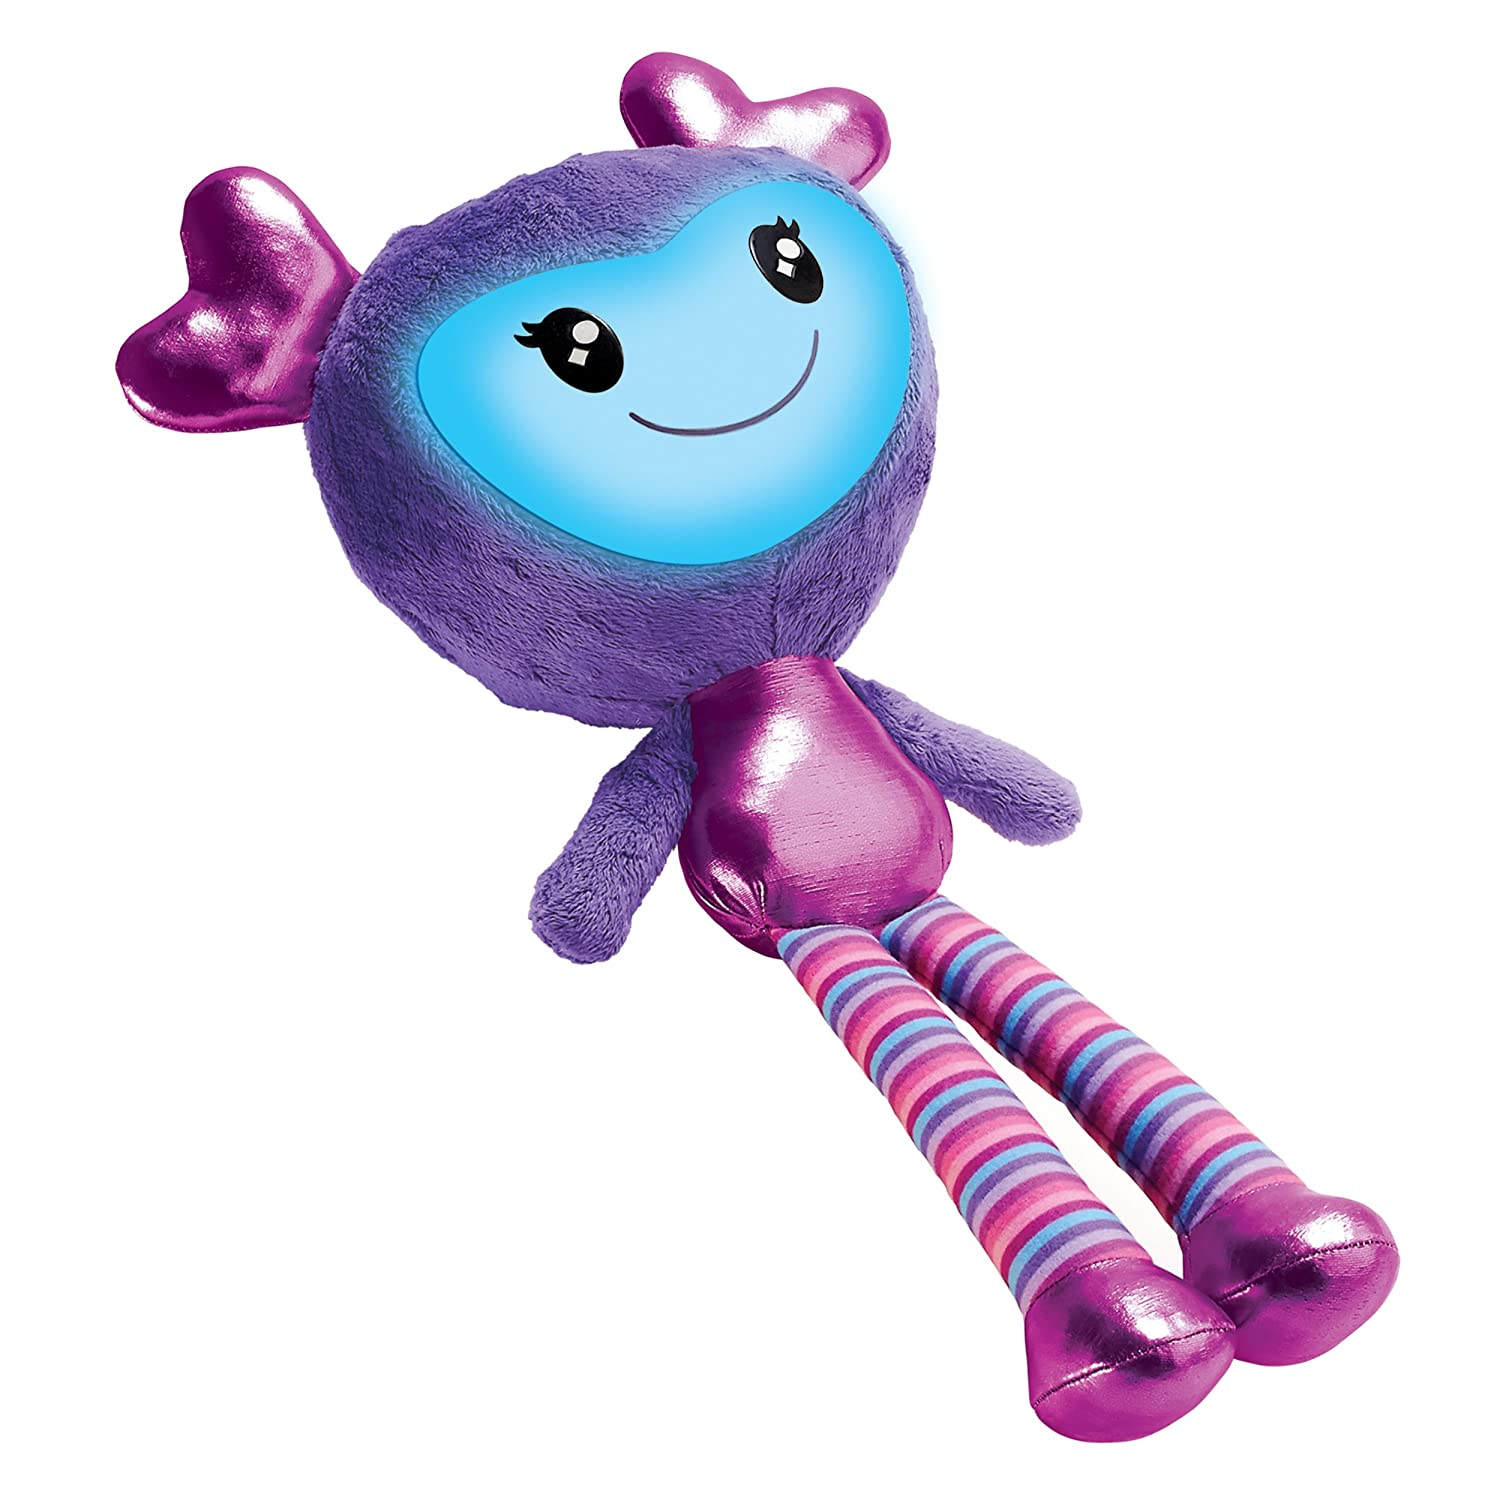 Brightlings by Spin Master Interactive Singing Purple Talking 15 Plush